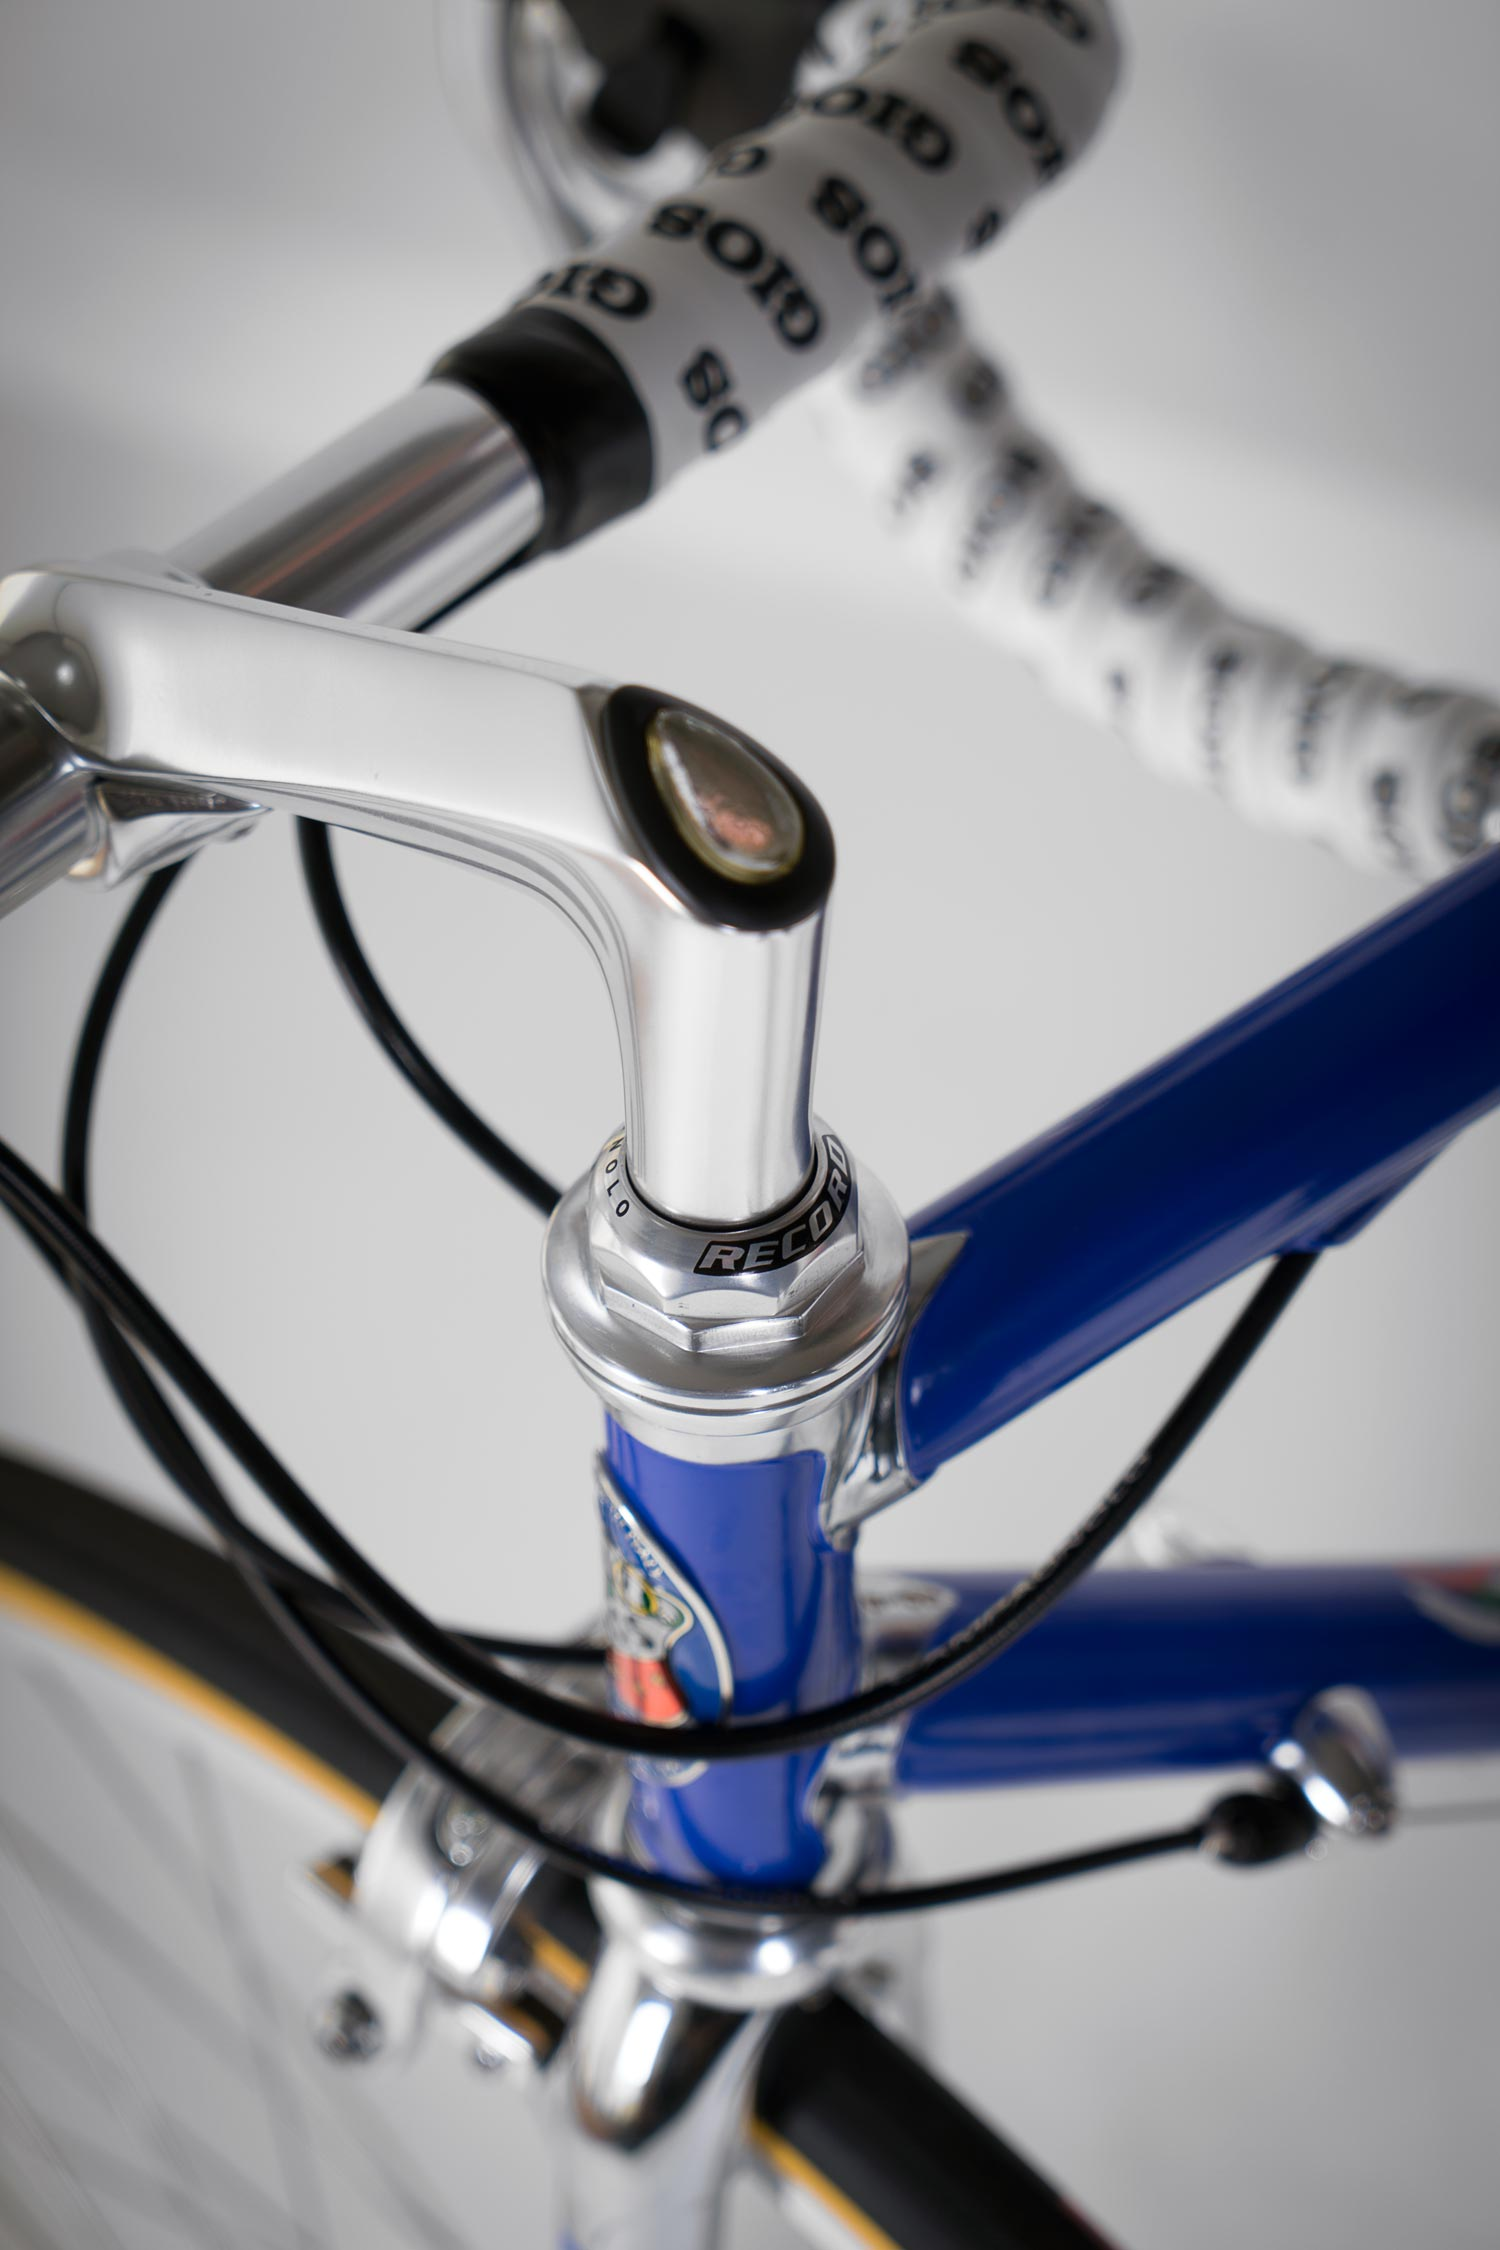 gios-compact-pro-detail-22